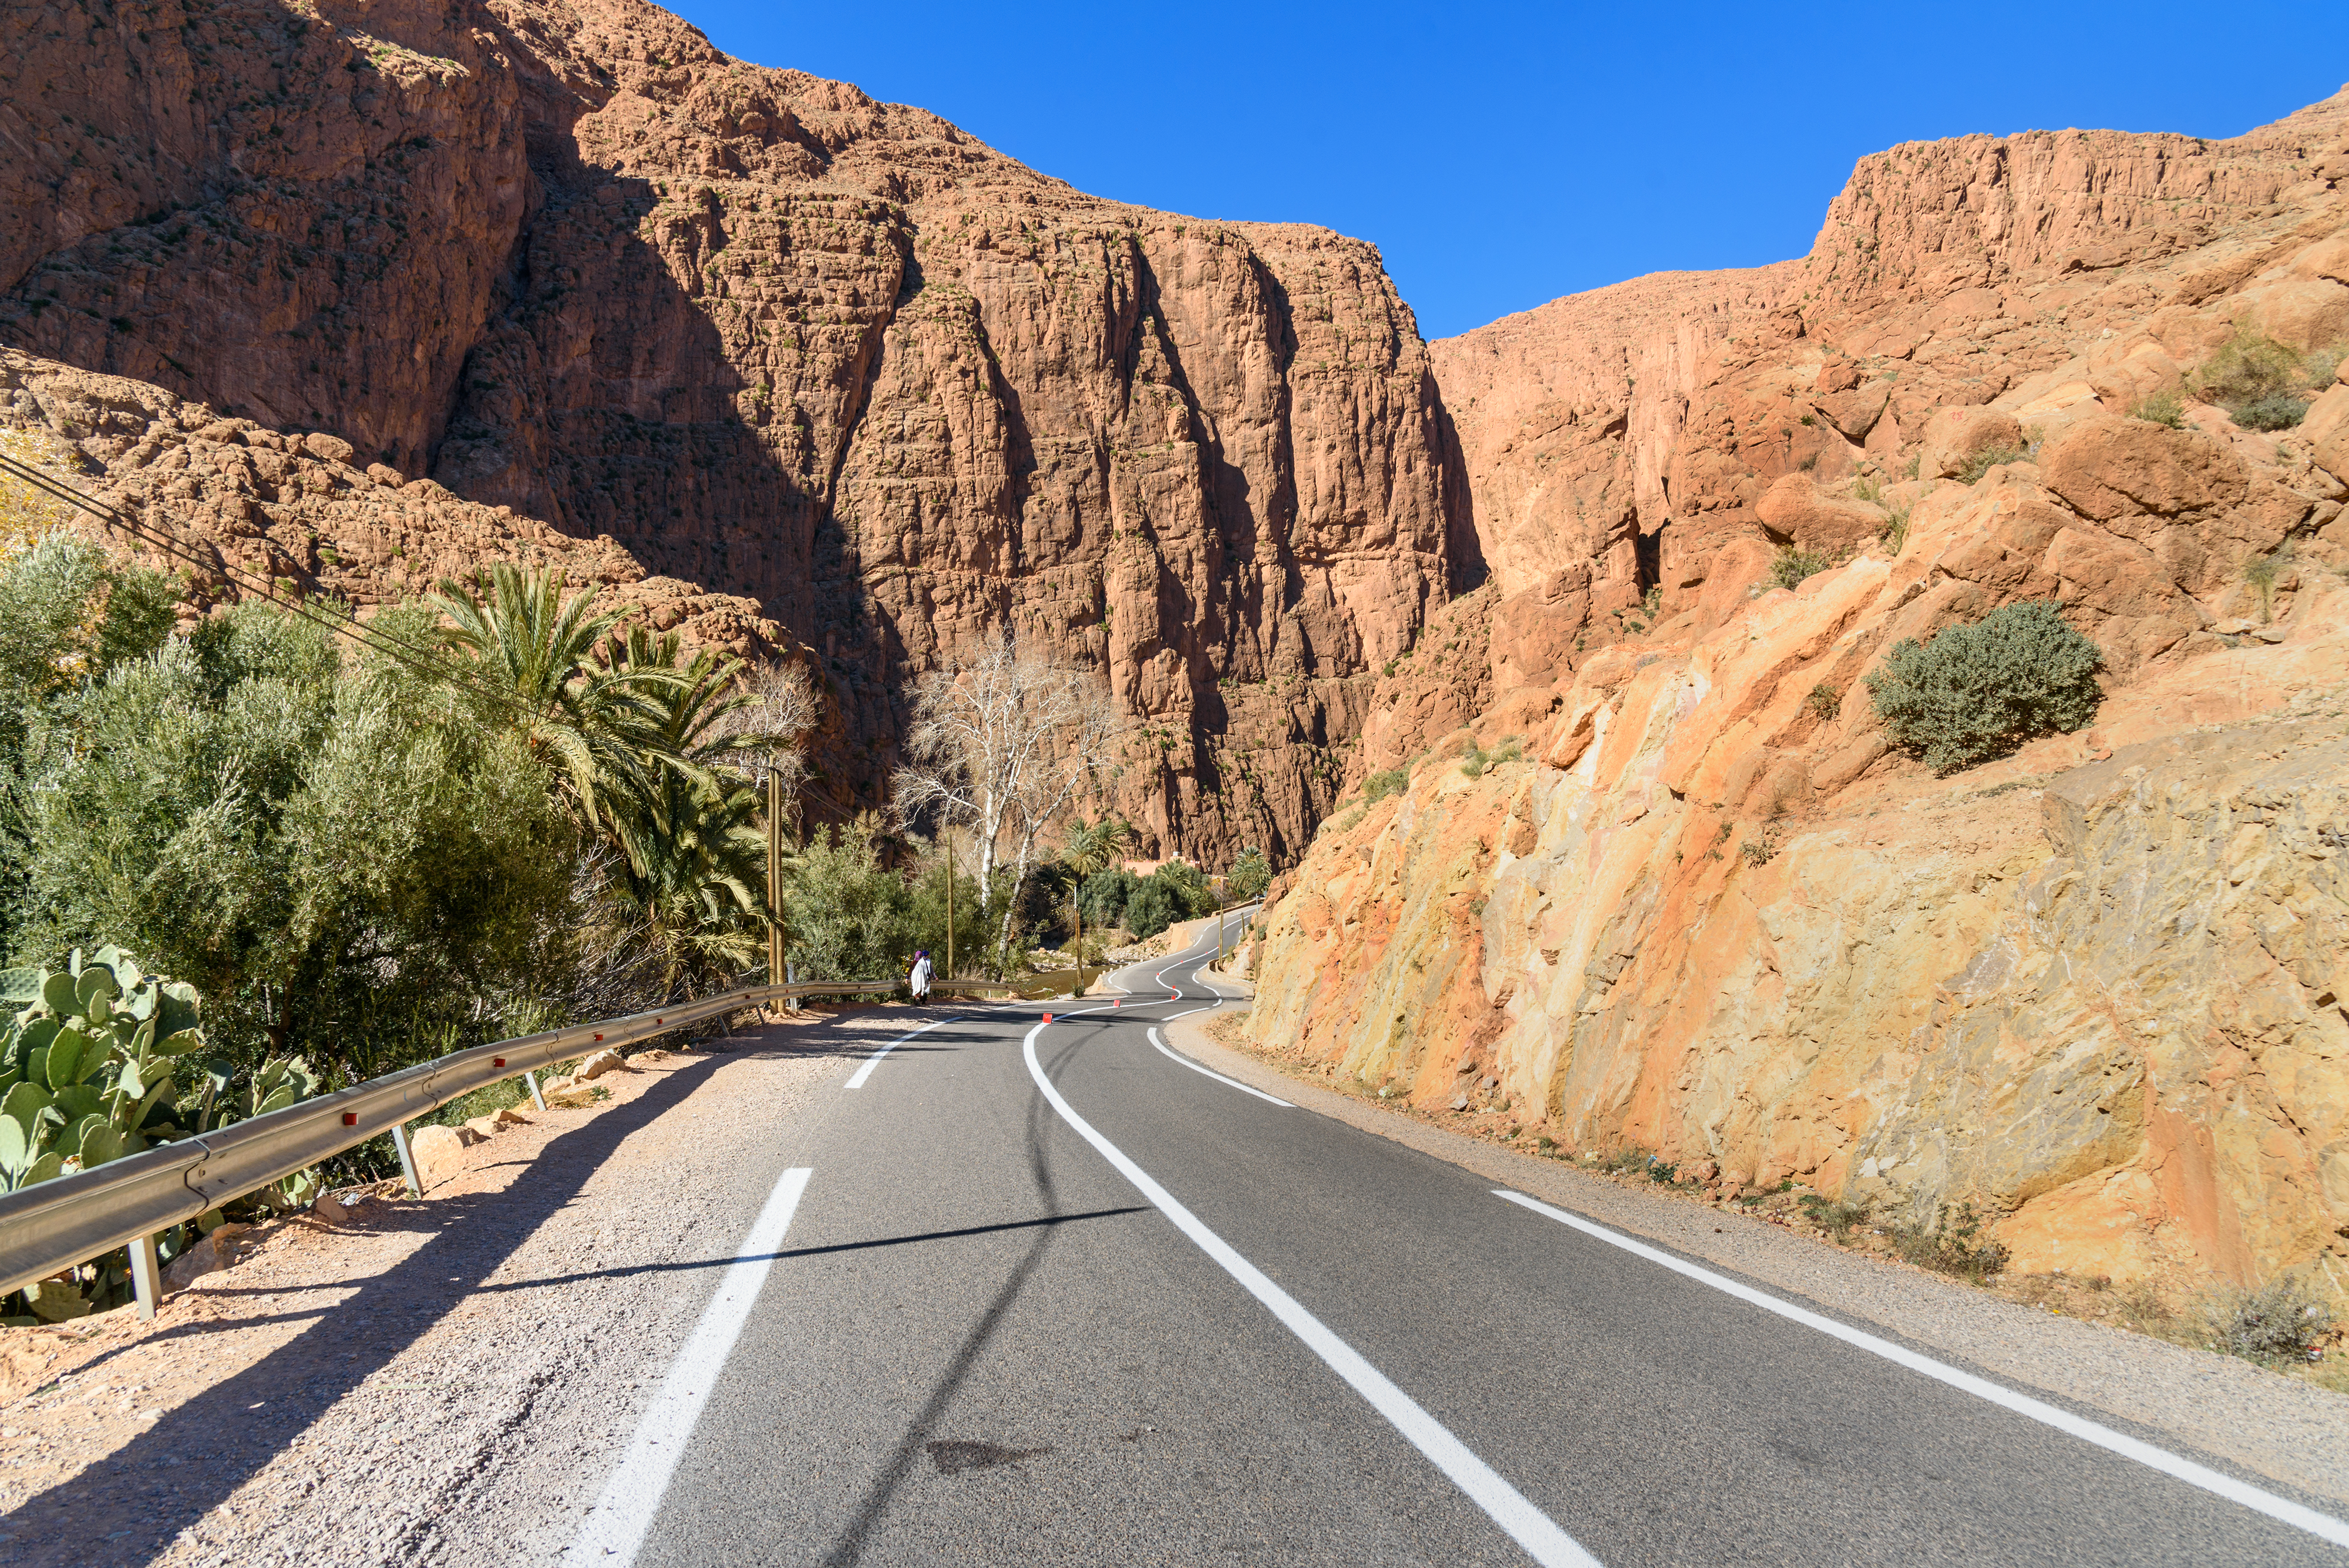 Road to Todra Gorge